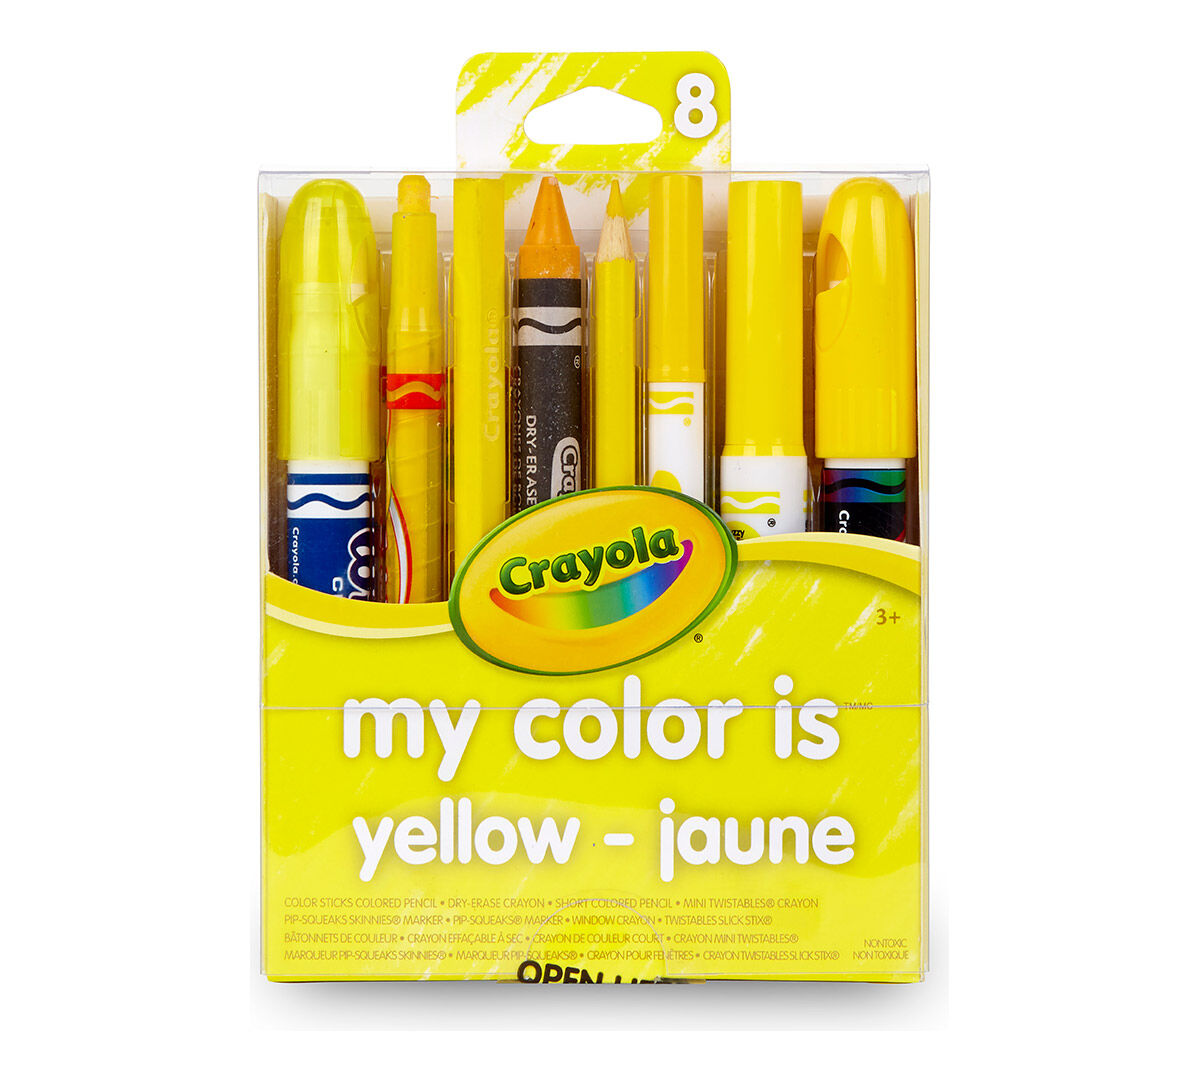 My Color is Yellow